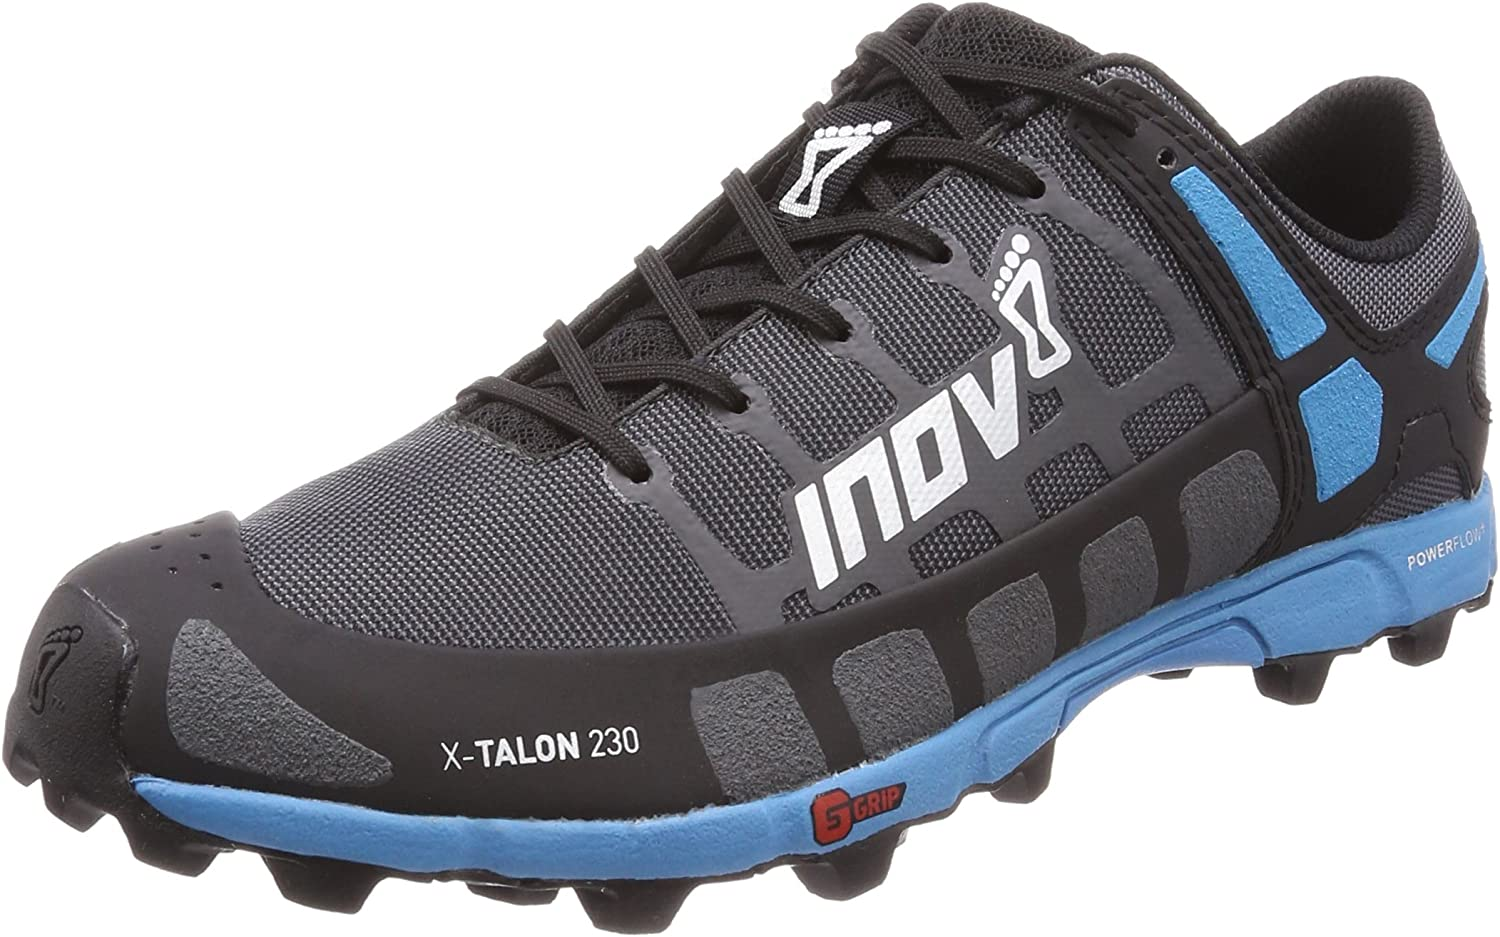 Inov-8 Mens X-Talon 230 – Lightweight OCR Trail Running Shoes – for Spartan, Obstacle Races and Mud Run